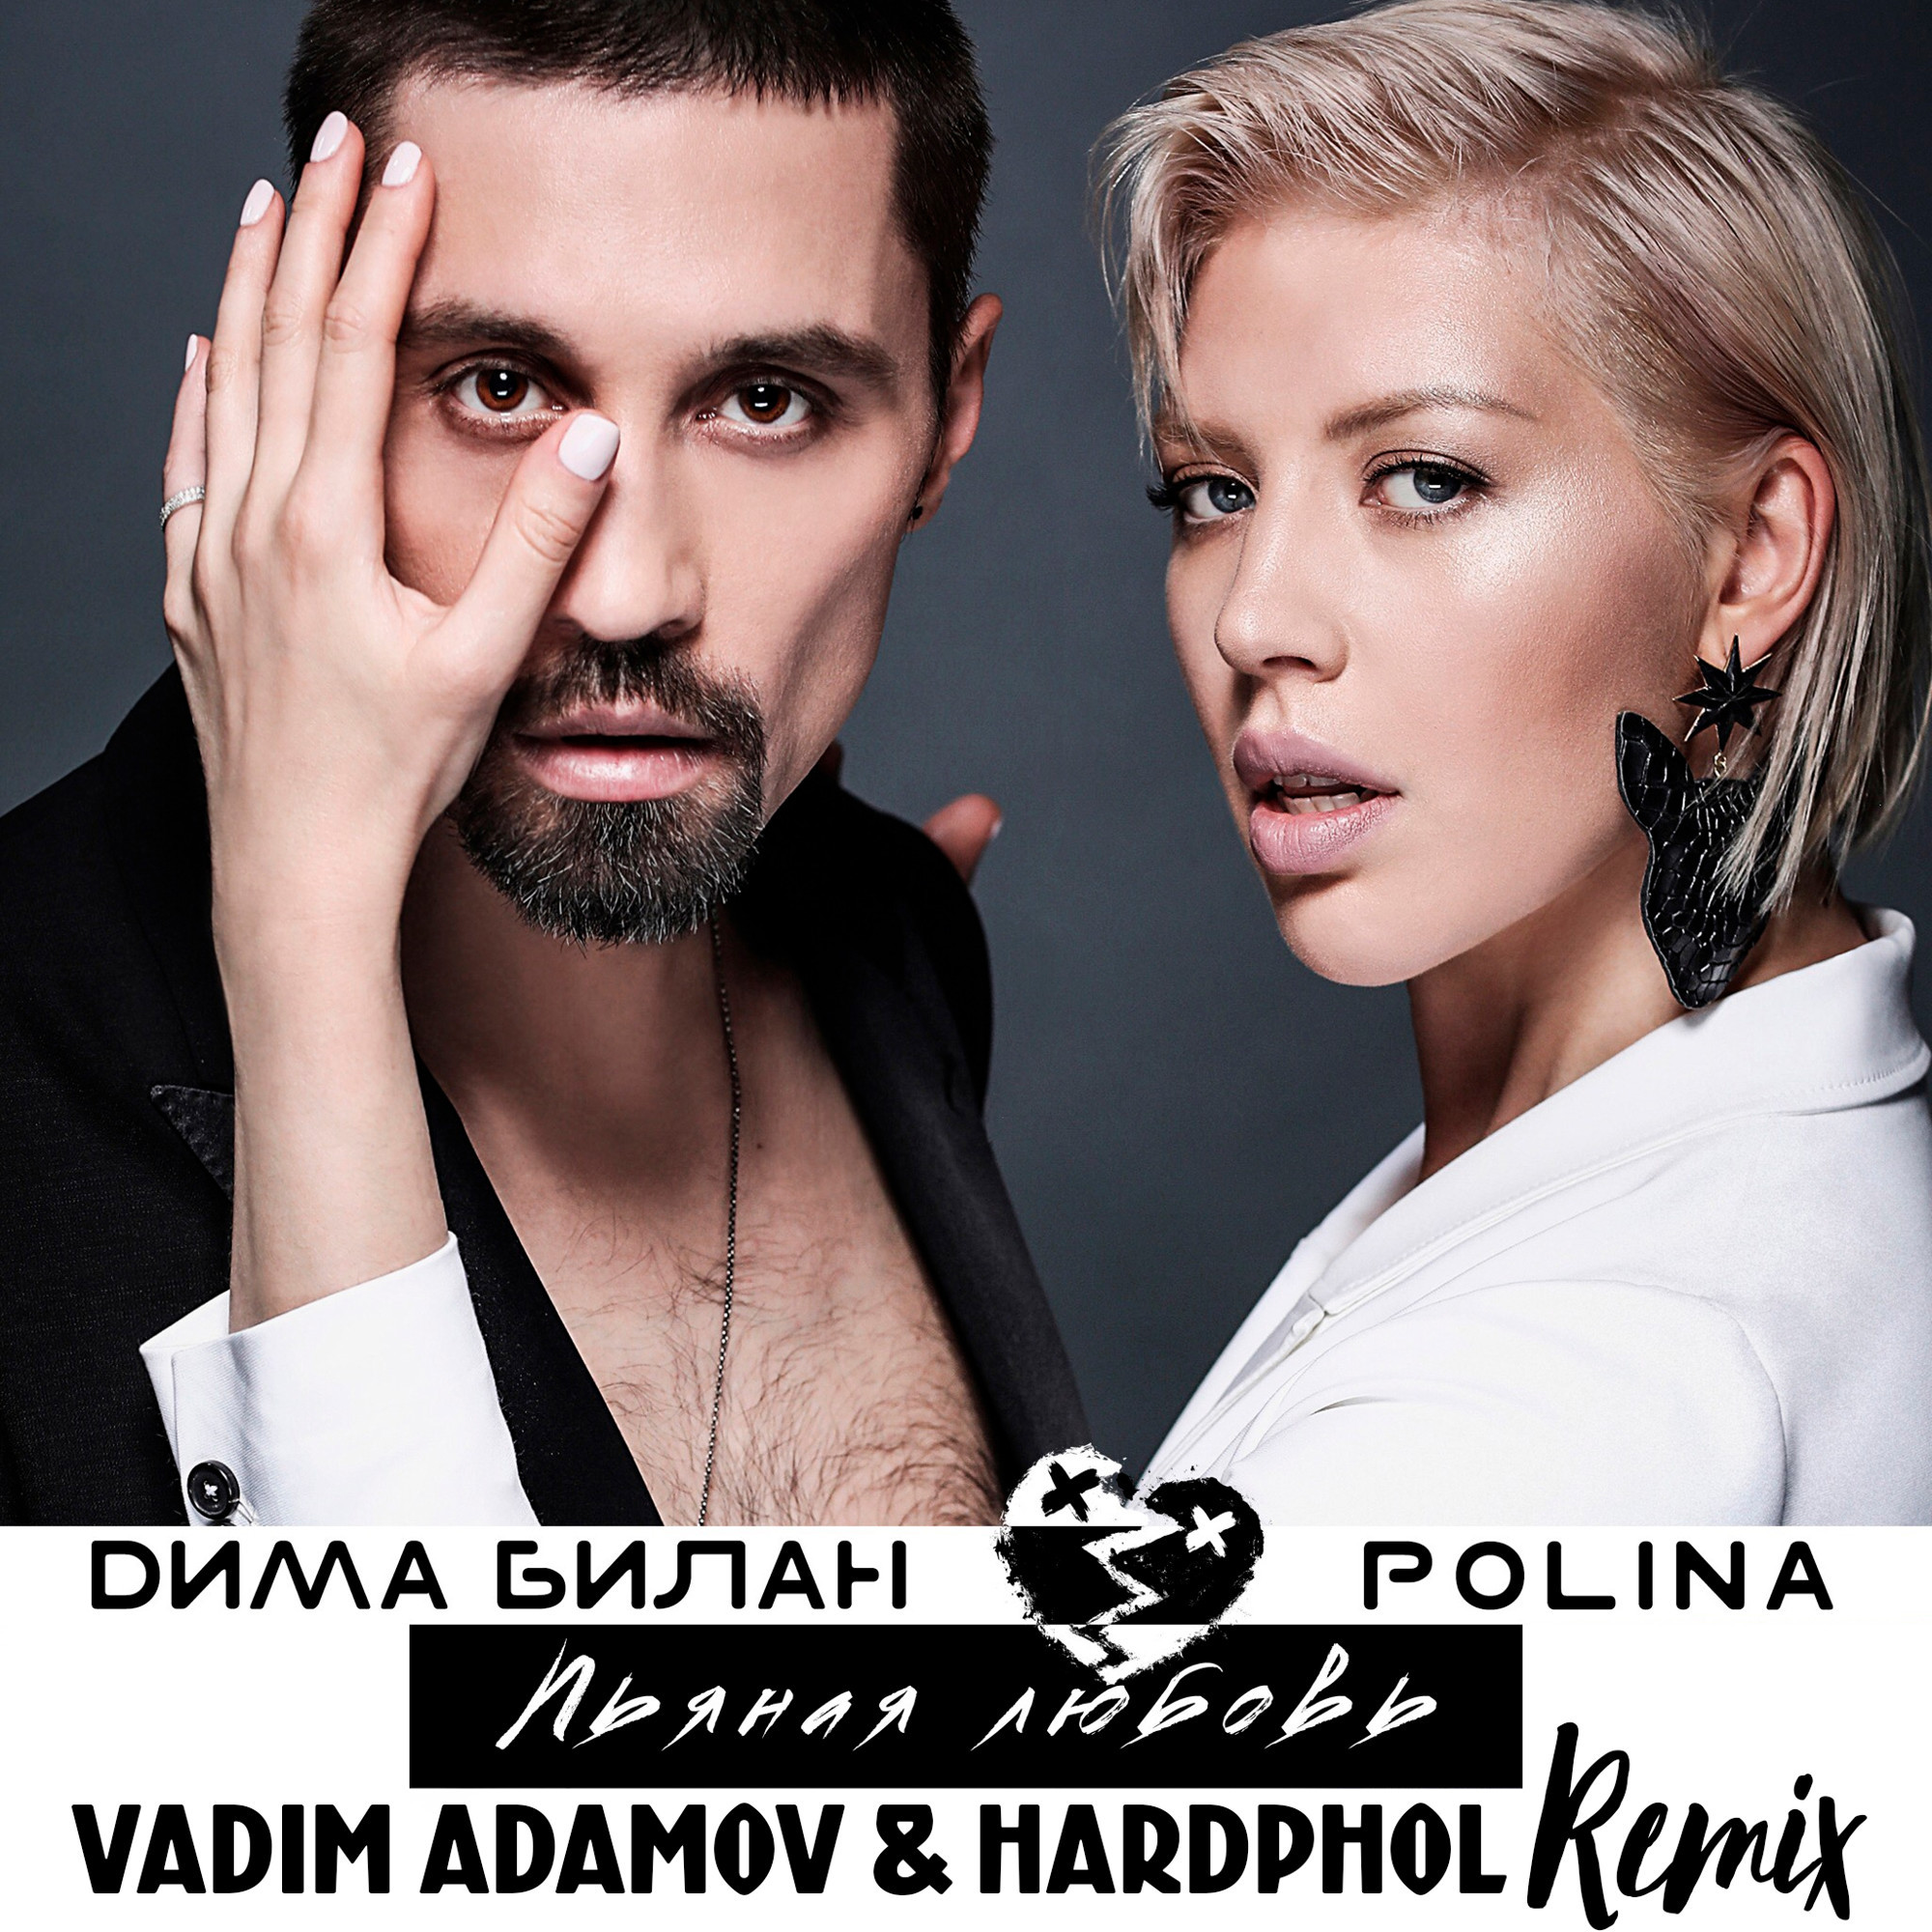 Taki Taki Rumba Mp3 Ringtone Download: Пьяная Любовь (Vadim Adamov